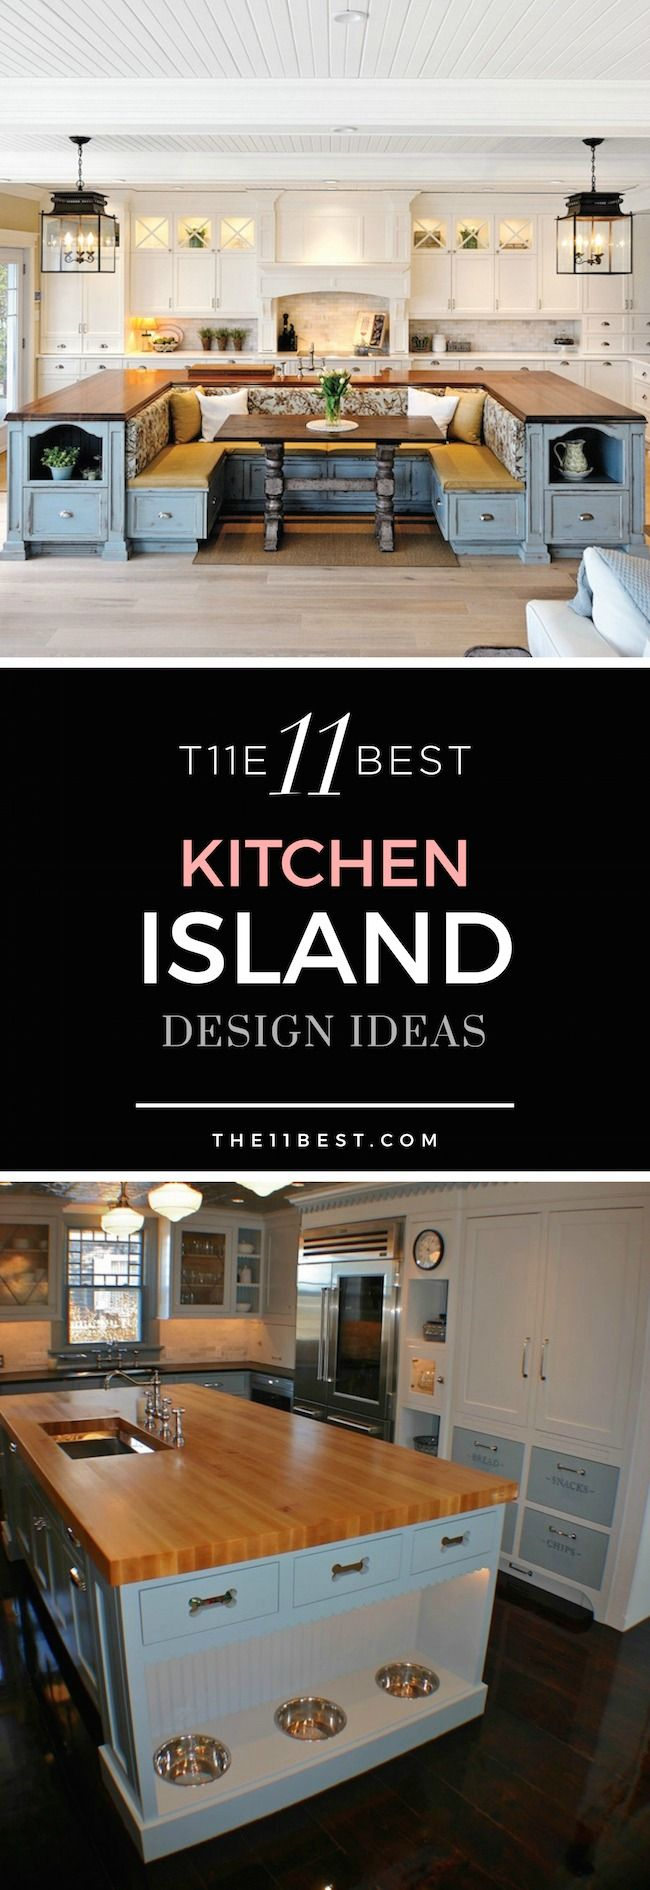 The 11 Best Kitchen Islands | Island design, Kitchens and House